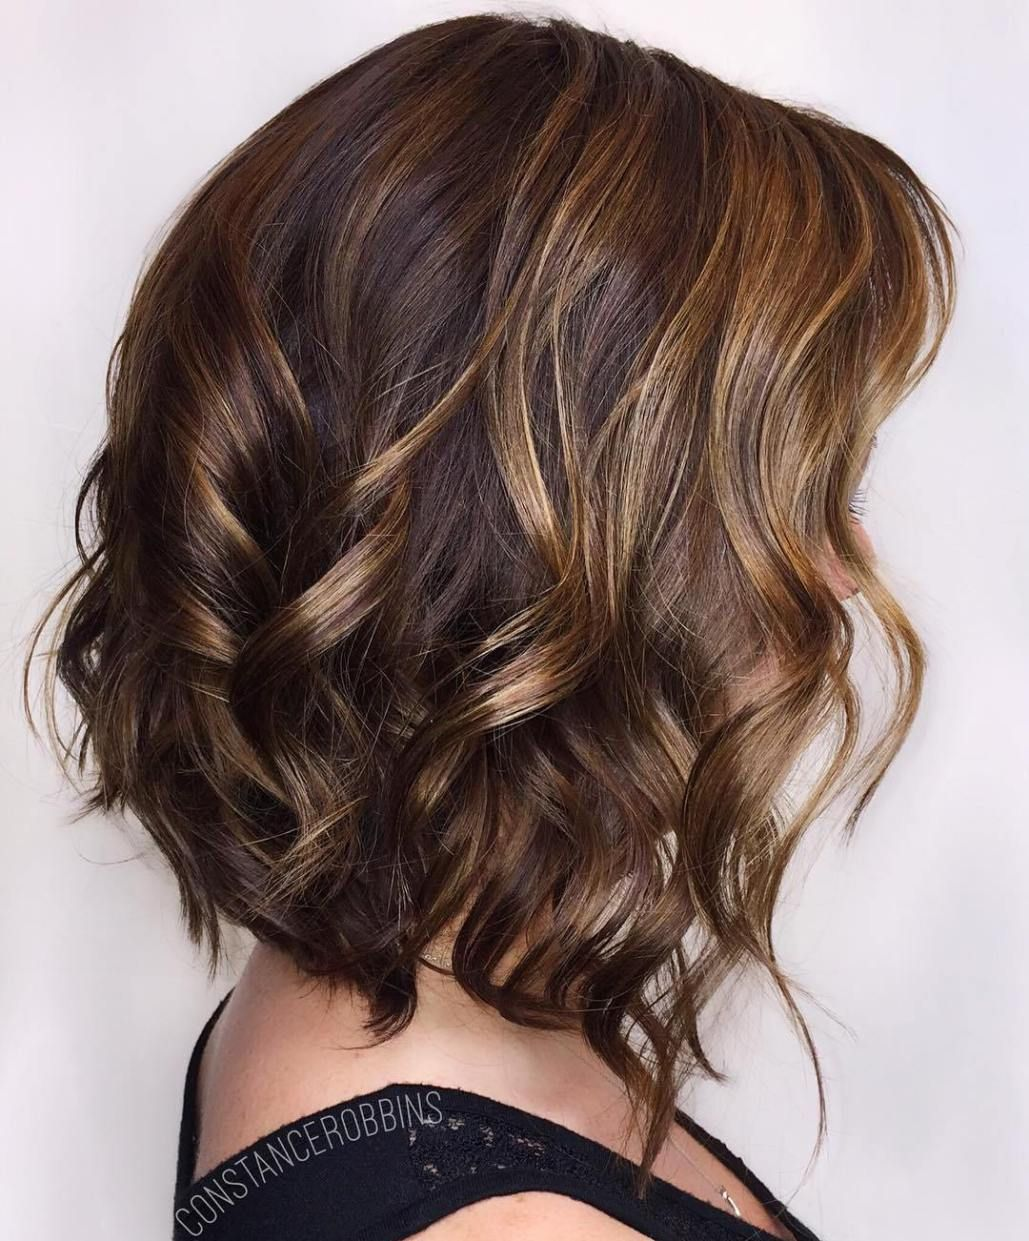 50 Ideas For Light Brown Hair With Highlights And Lowlights Brown Hair With Highlights Brown Hair With Highlights And Lowlights Hair Color Highlights